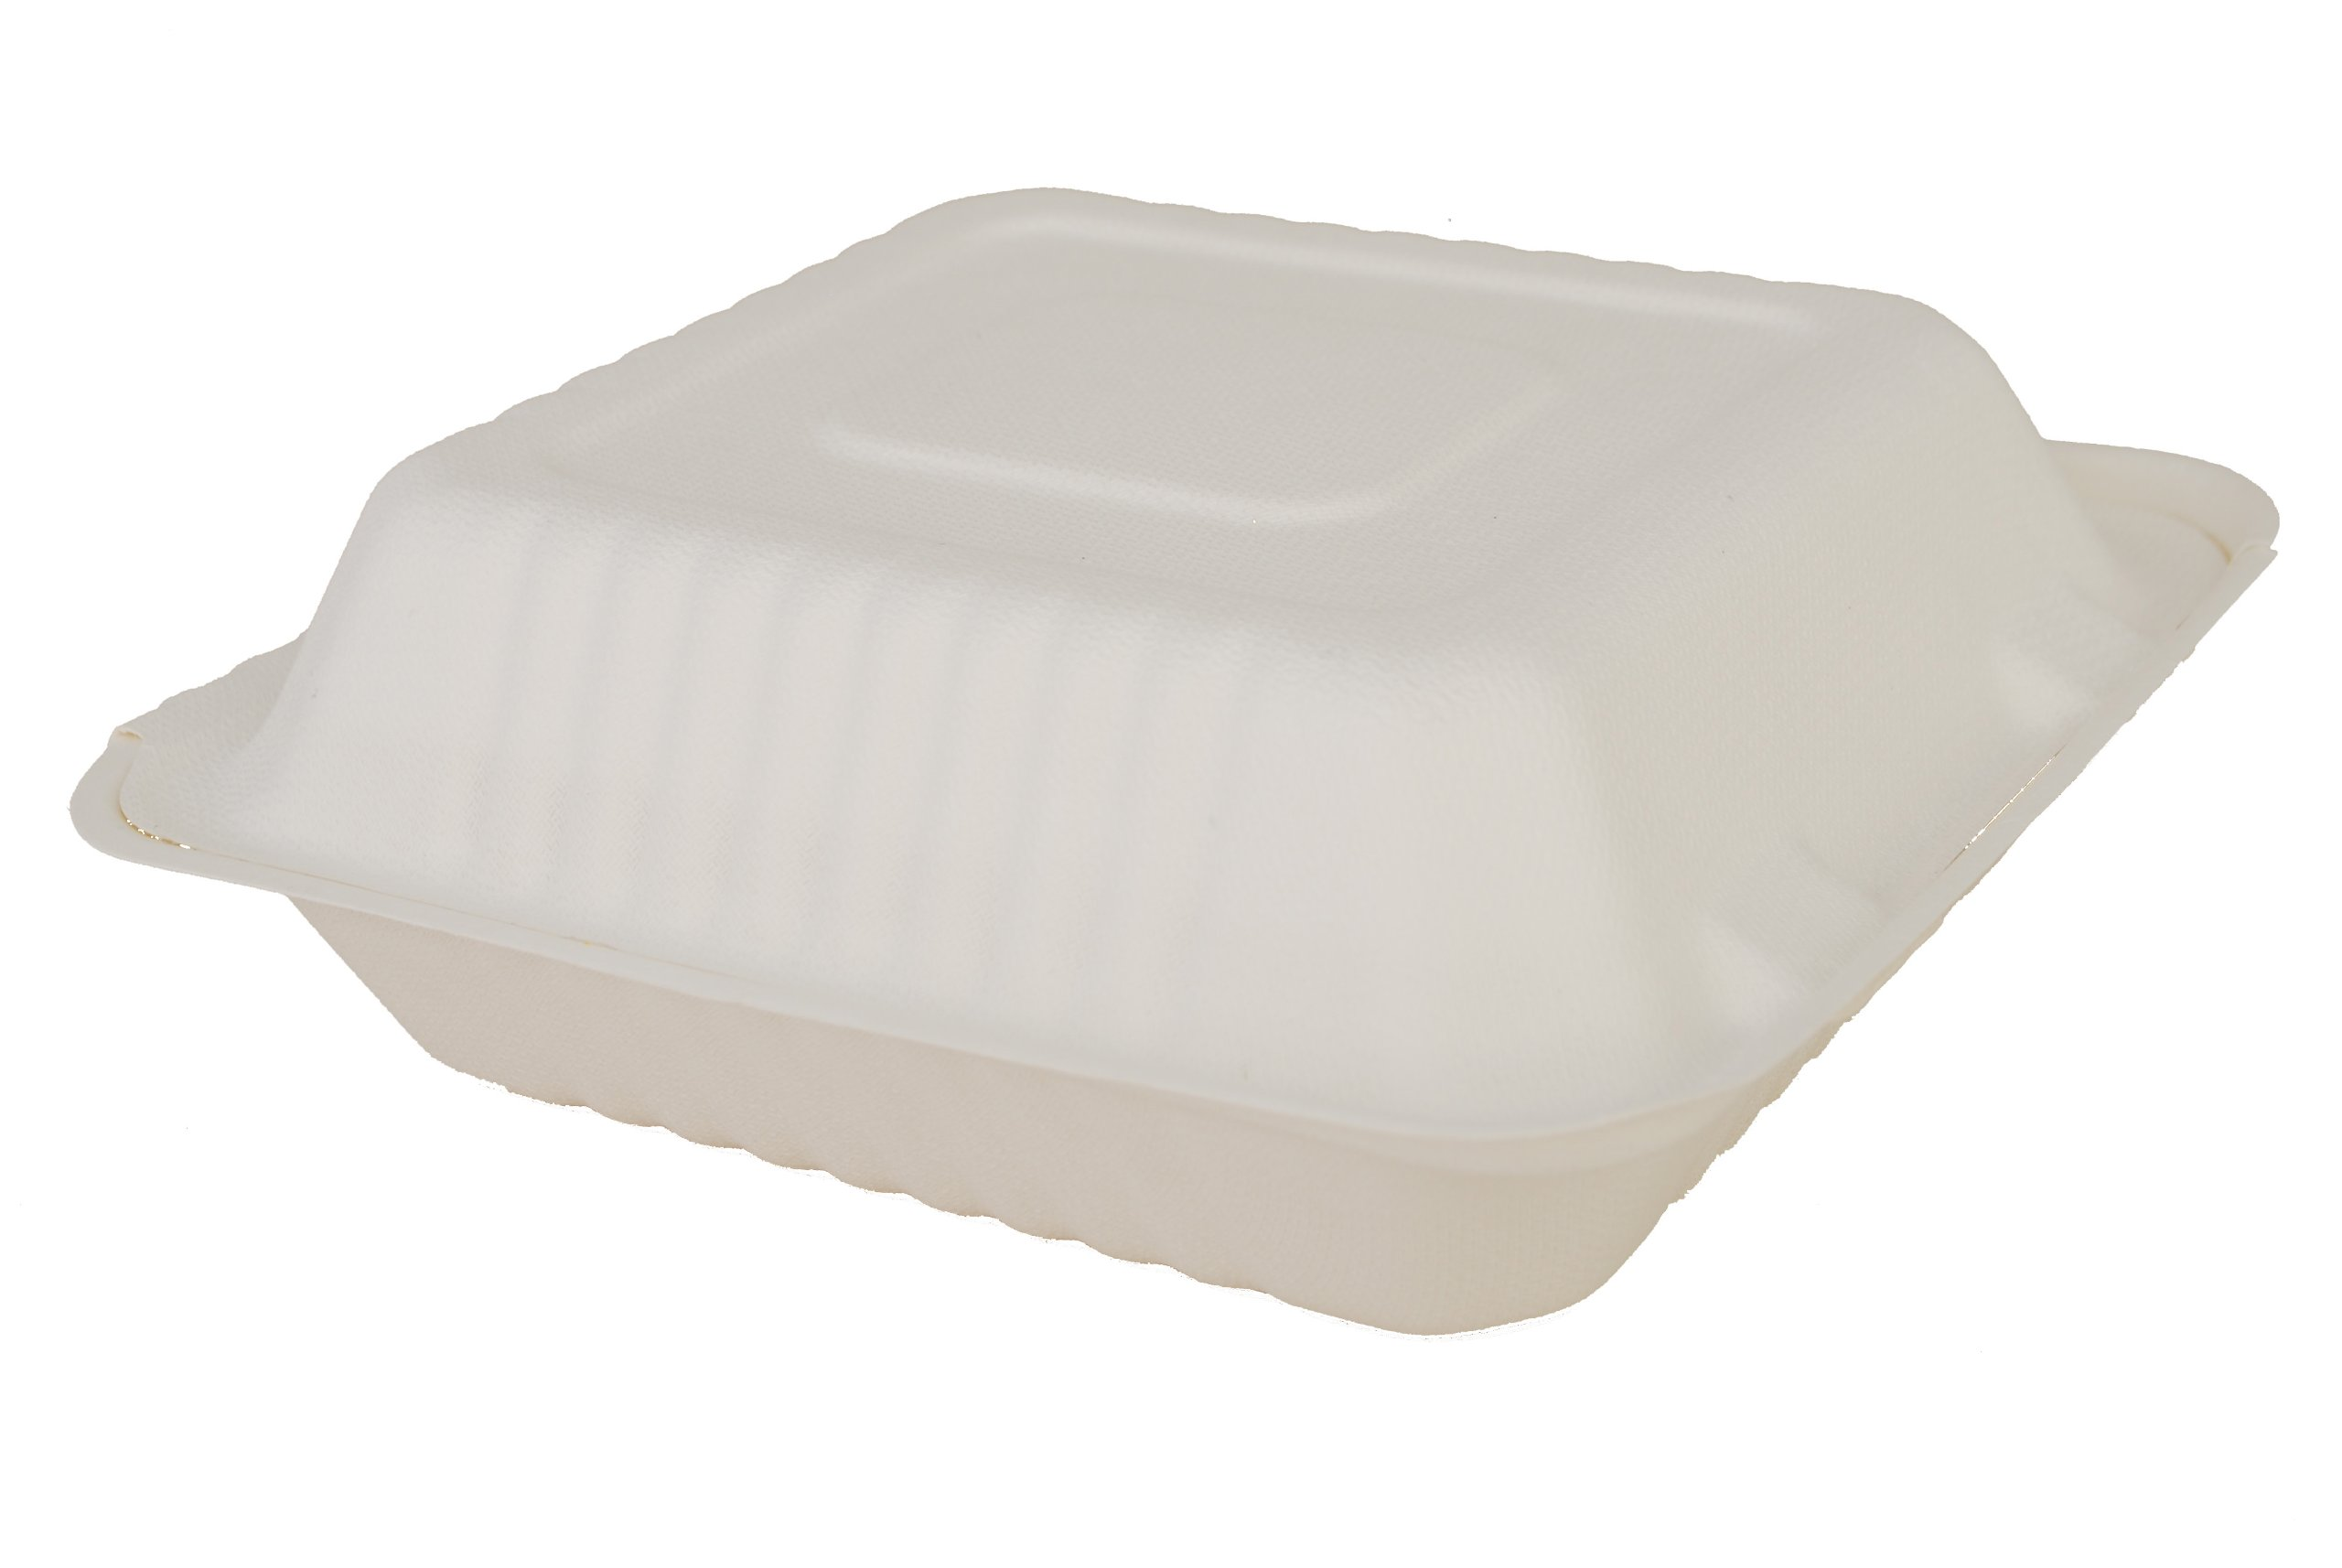 """Southern Champion Tray 18925 ChampWare Molded Fiber White Clamshell Container, 8"""" L x 8"""" W (Case of 200)"""